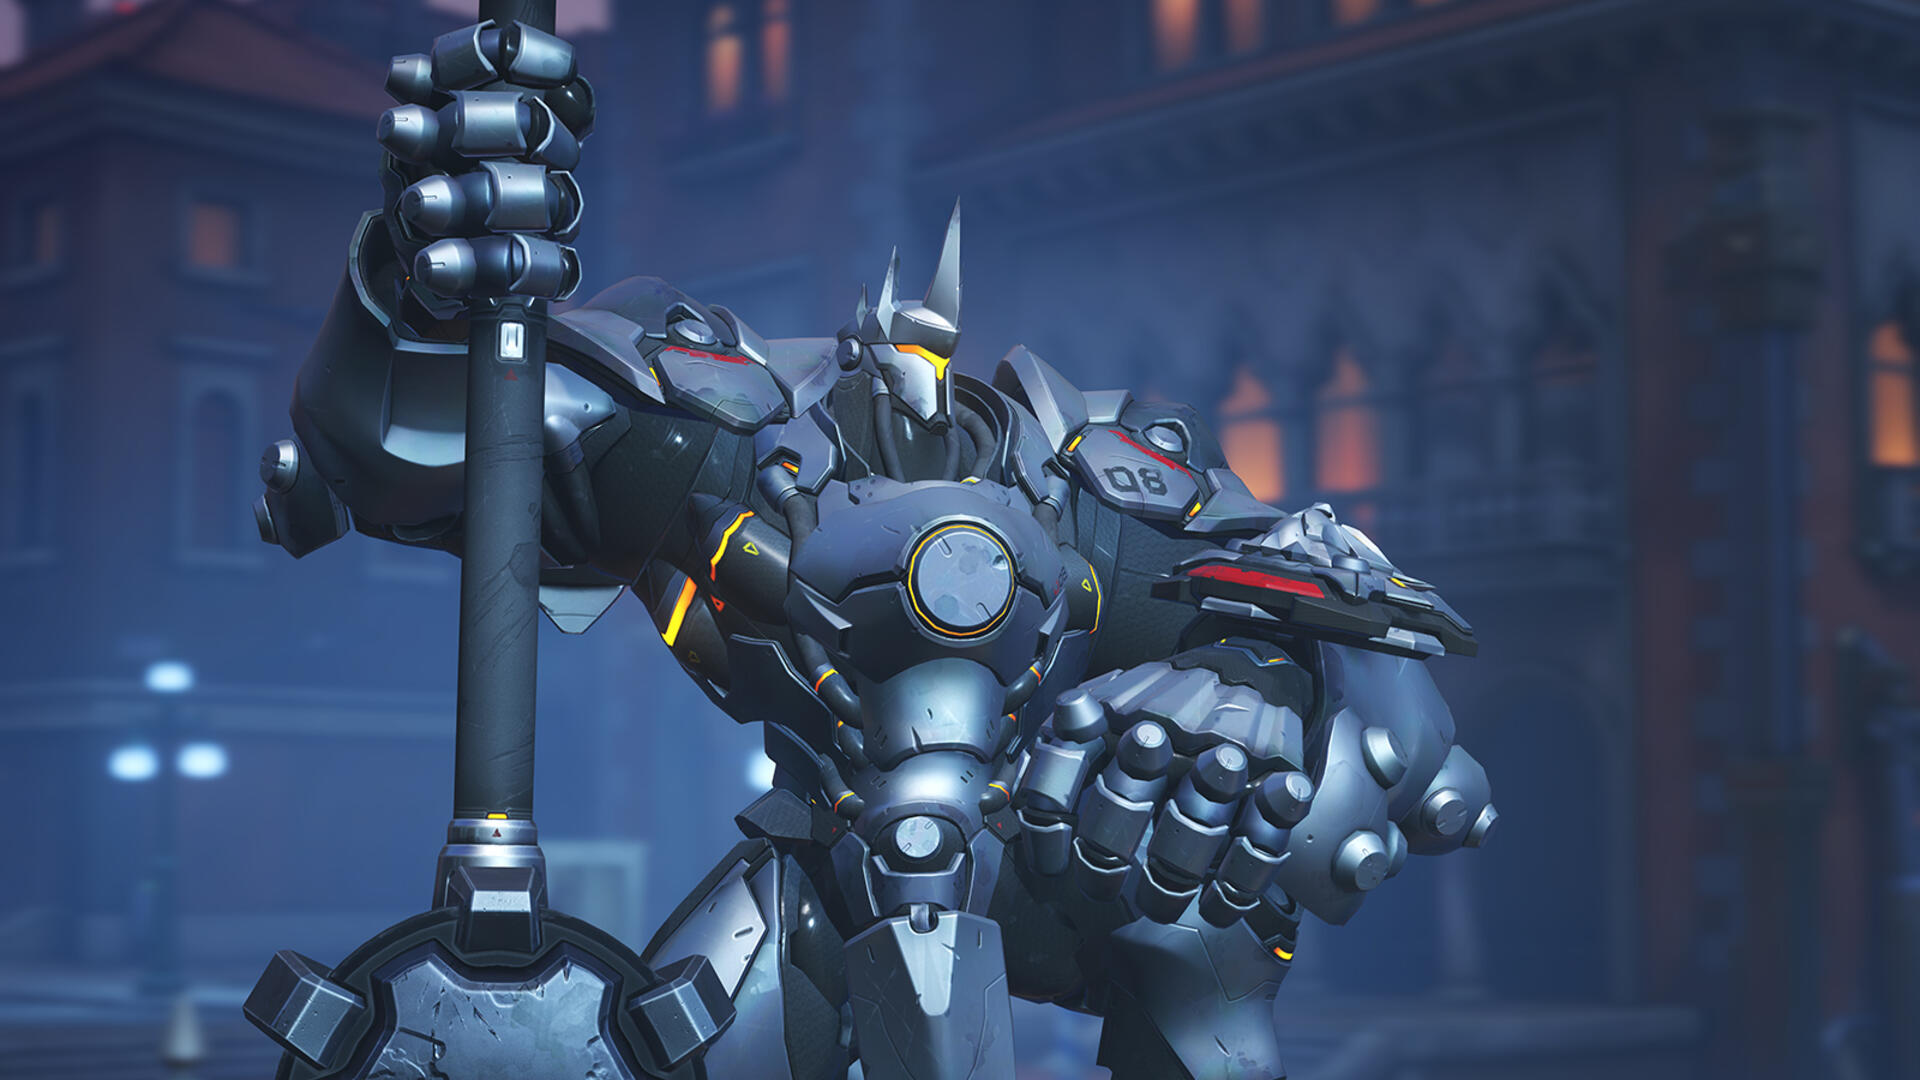 No Major Video Game Releases From Blizzard in 2019